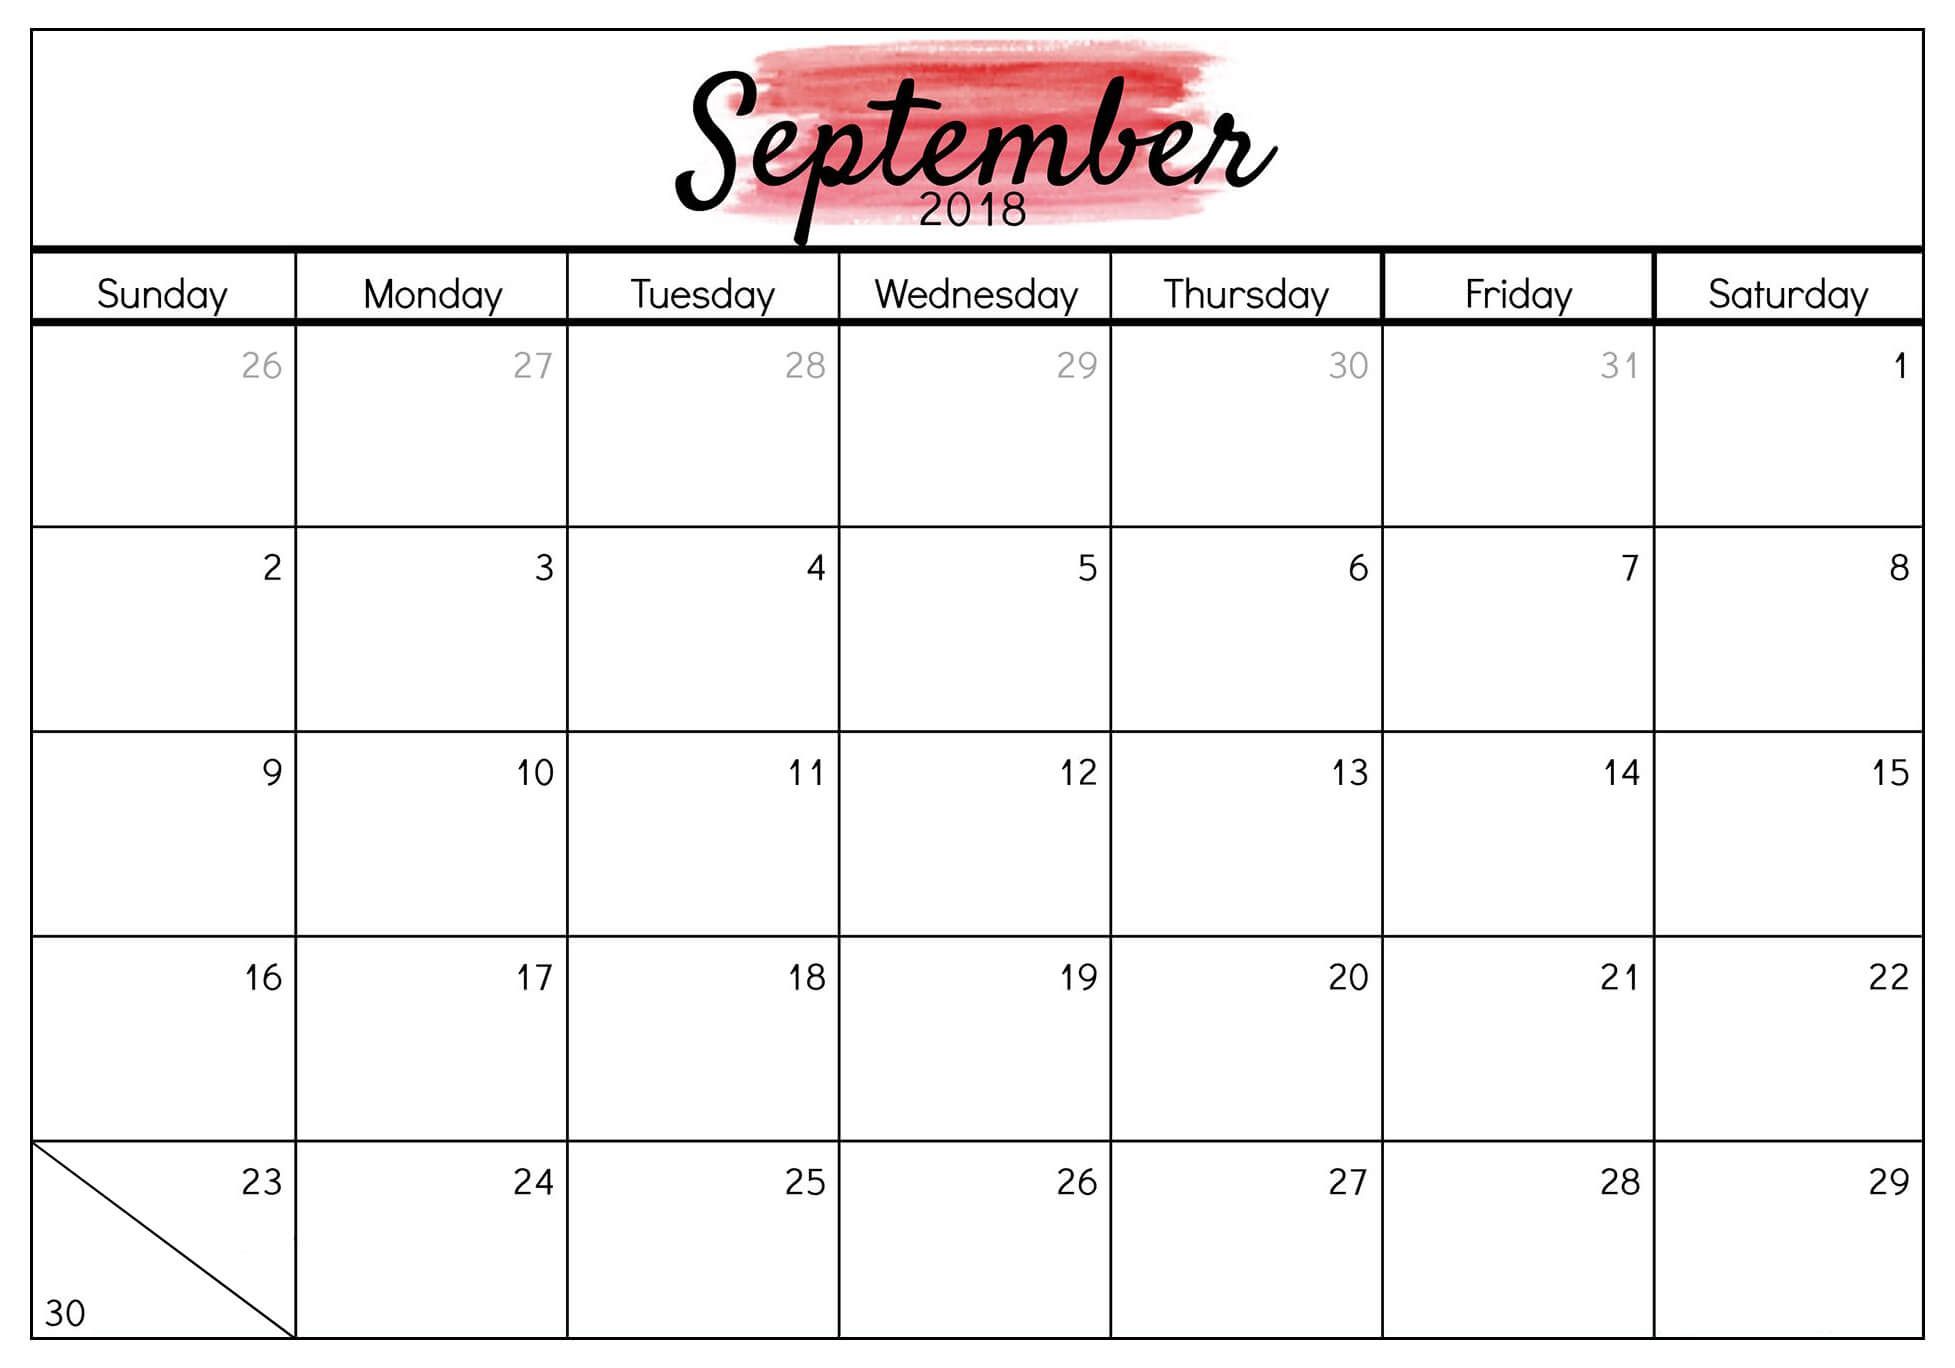 image regarding Free Printable September Calendar named September Calendar 2018 Template In just PDF, Phrase, Excel